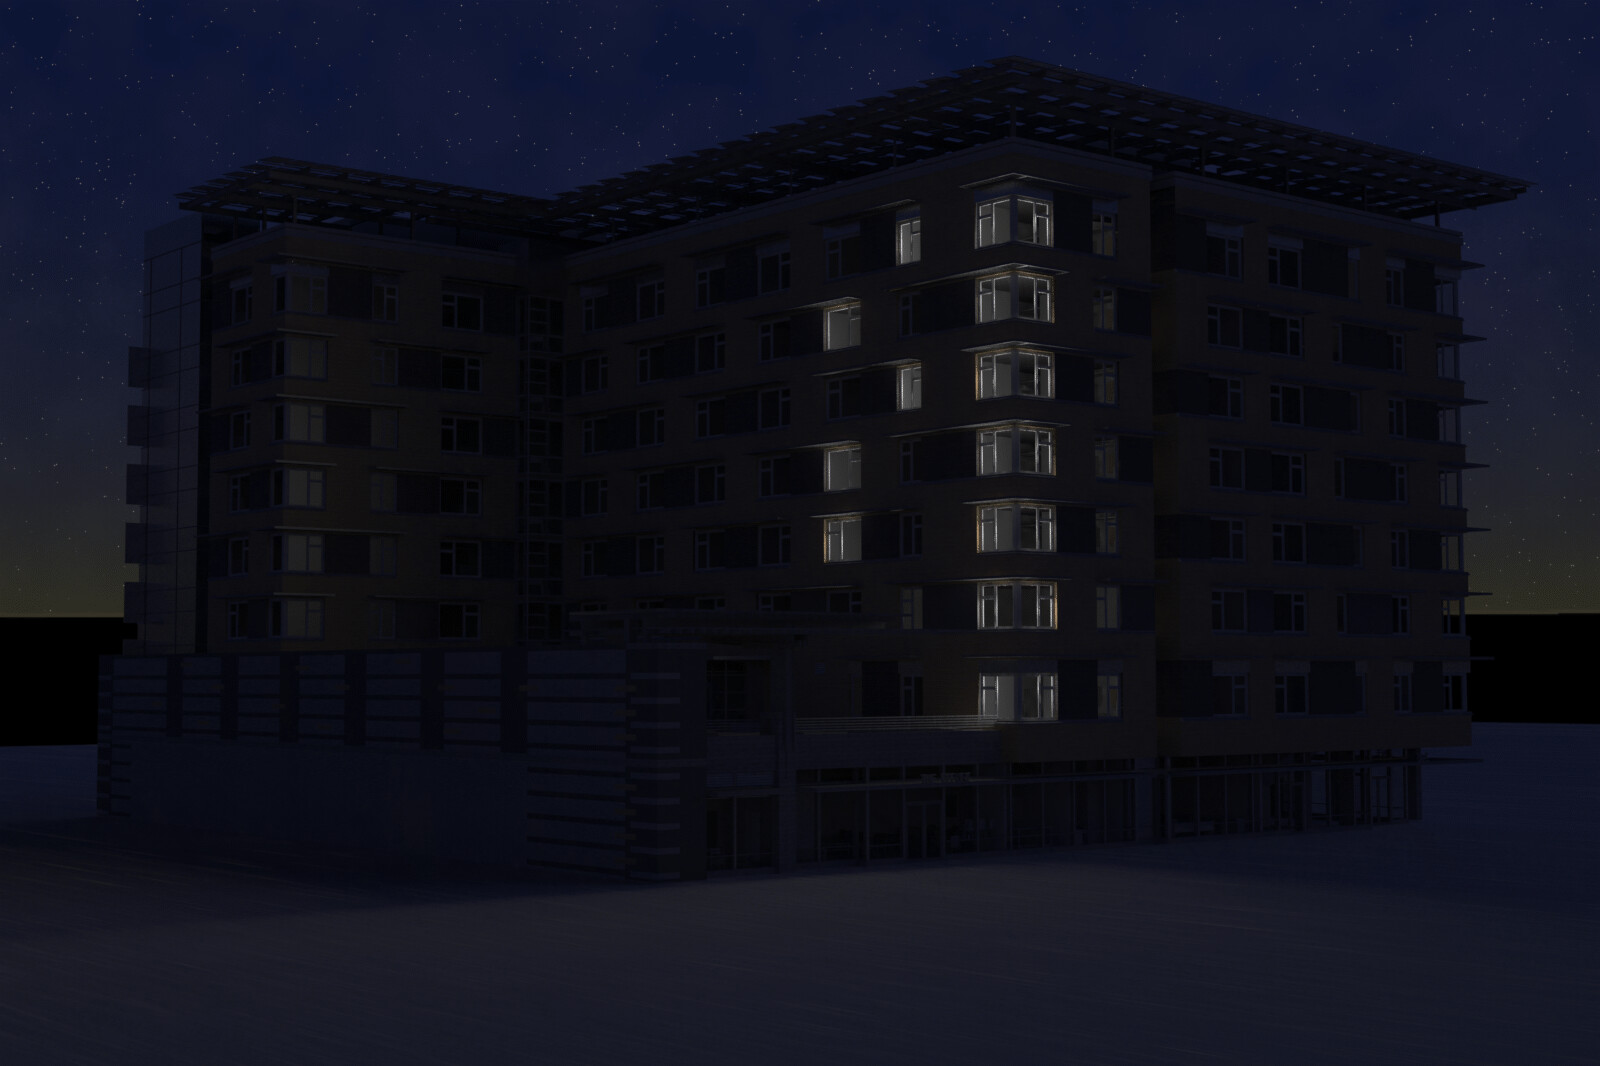 Old work - render project for 7th & H project - this is an exterior of the building.